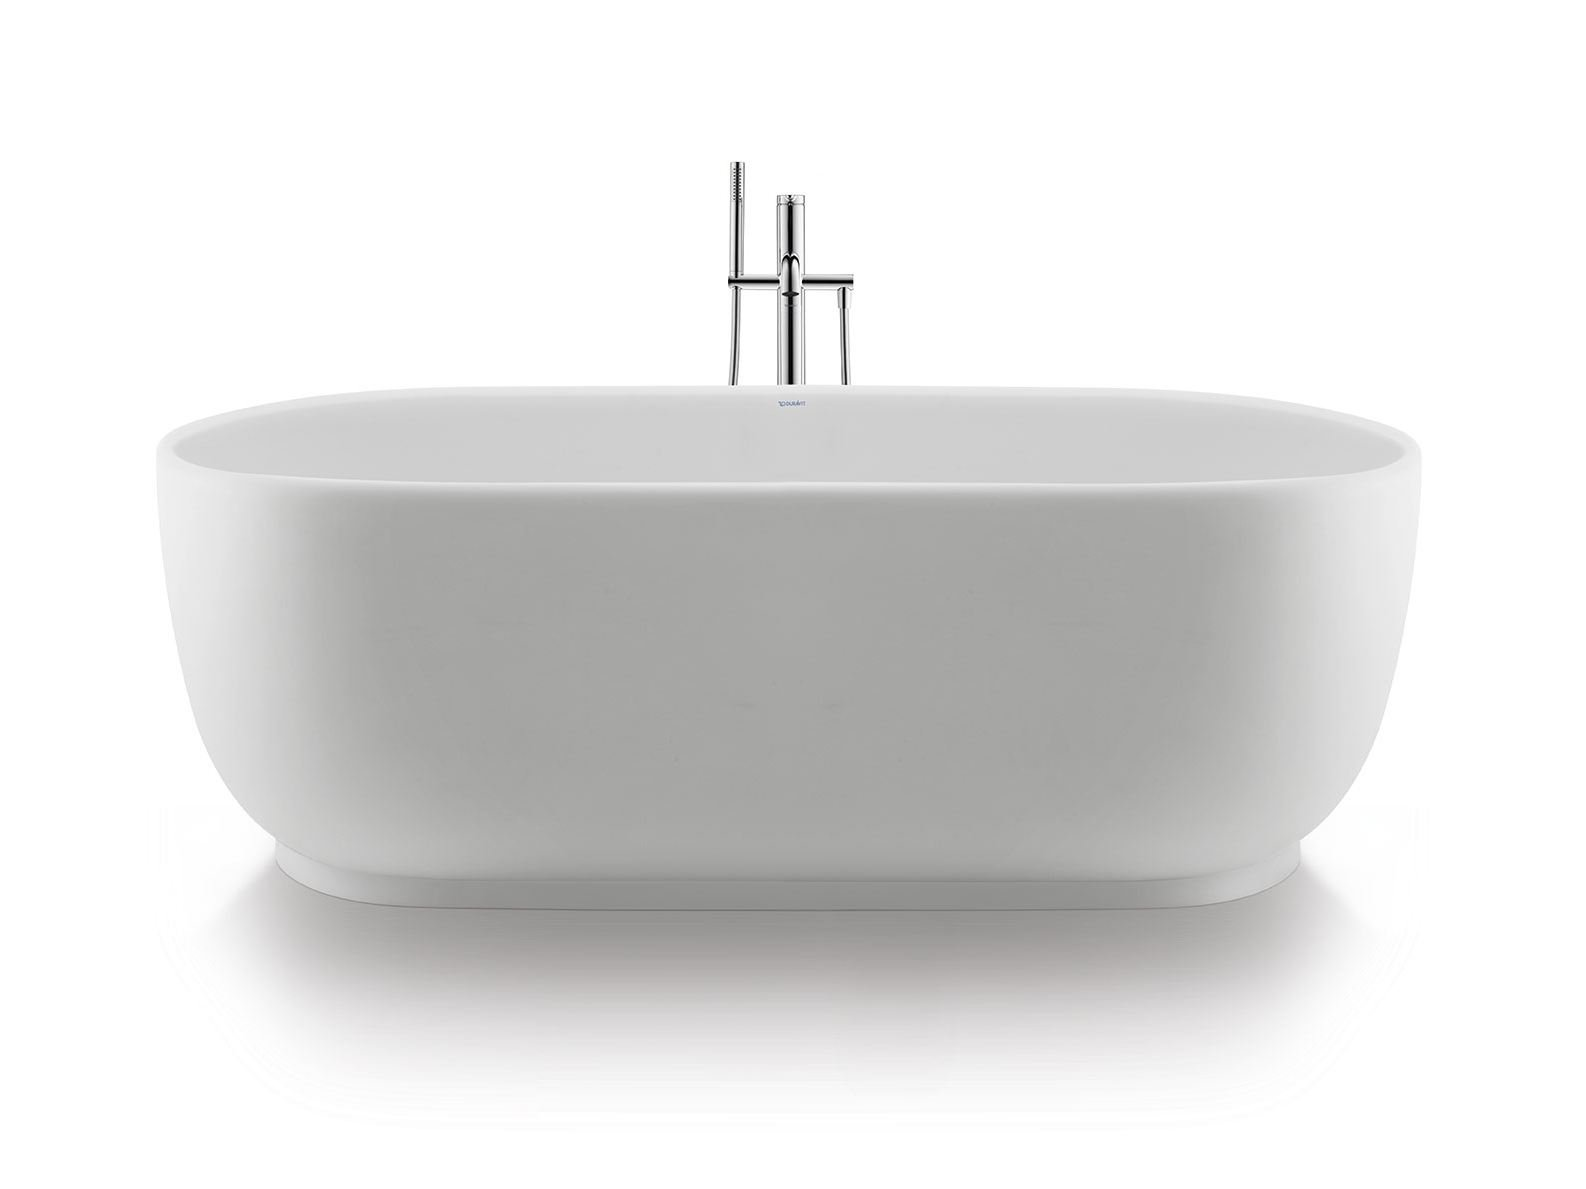 products duravit bathtubs  archiproducts - freestanding oval bathtub luv  freestanding bathtub duravit